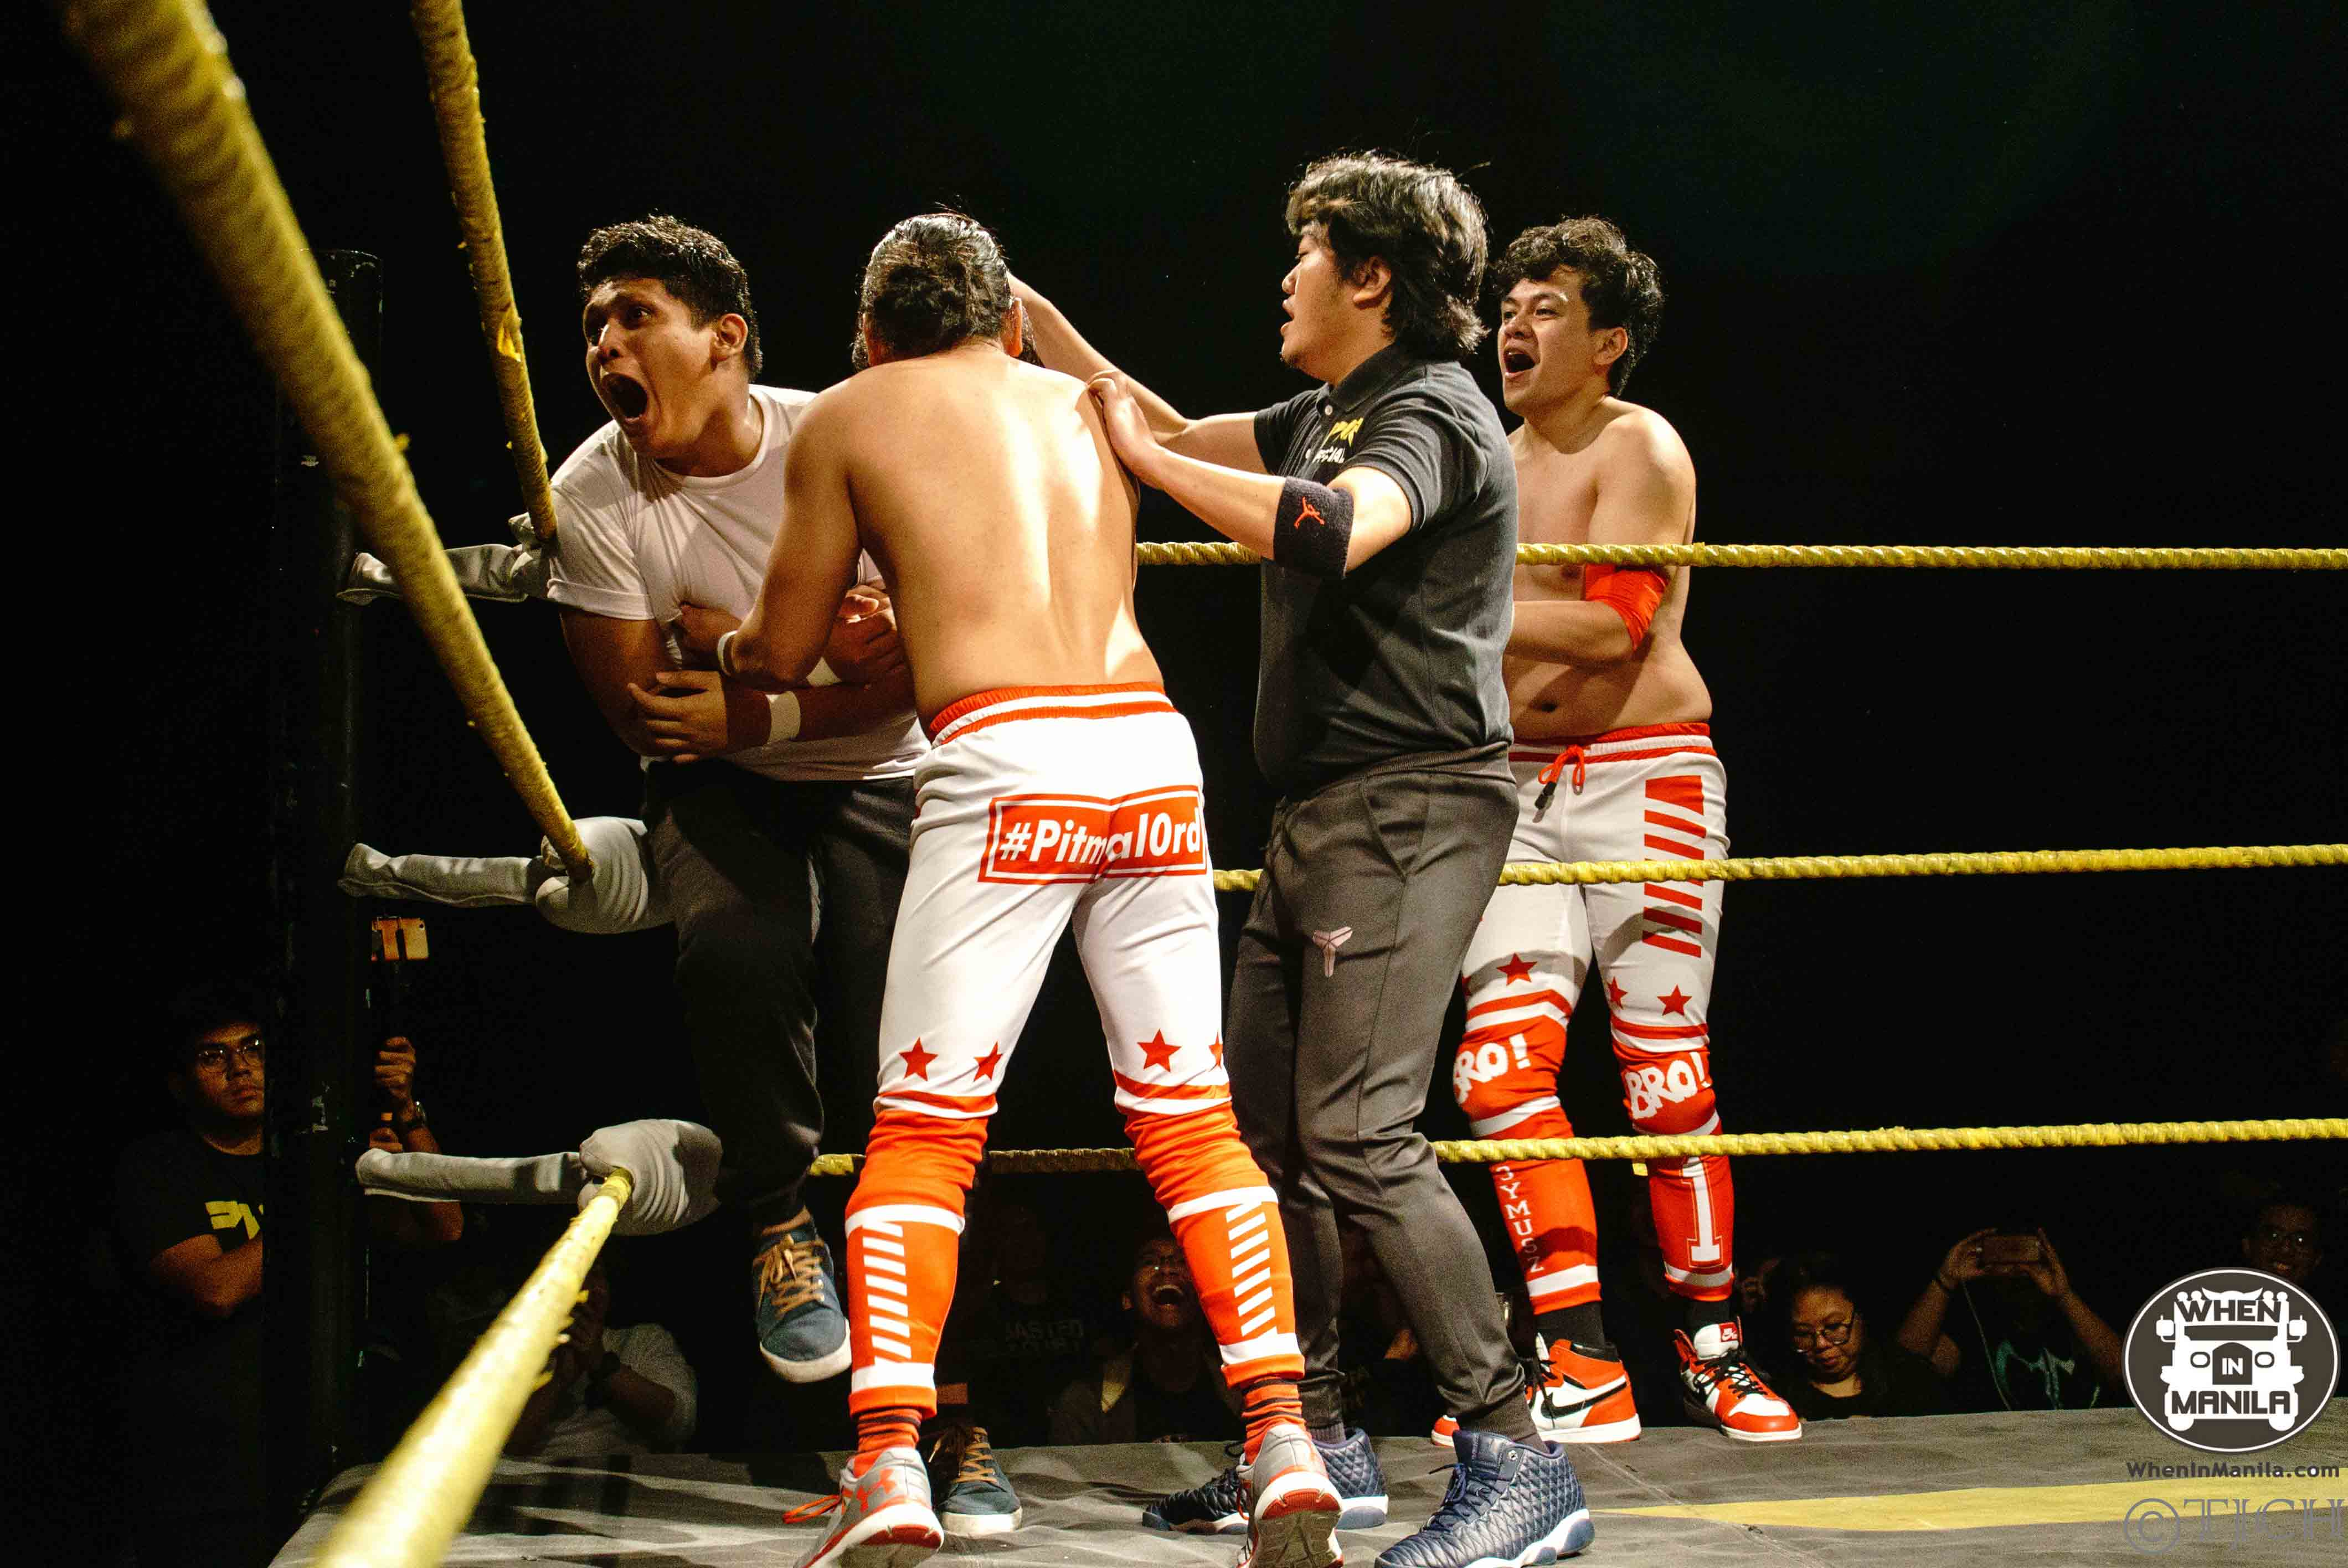 PWR-Live-Way Of The Champion-results-when-in-manila-mckatacornered